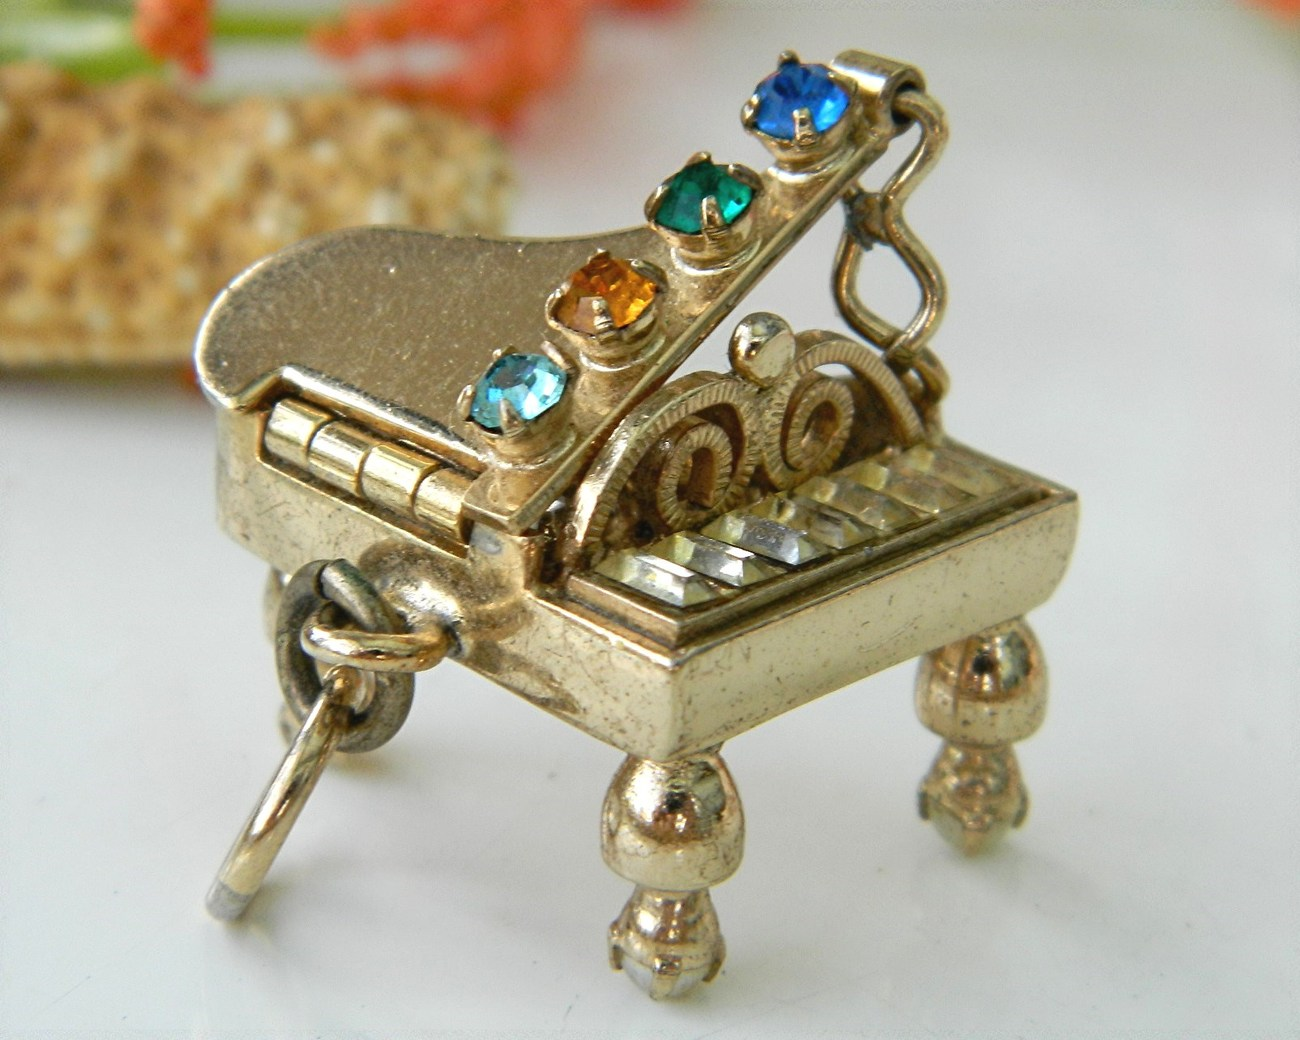 Vintage Grand Piano Charm Pendant Mechanical Rhinestones 3D